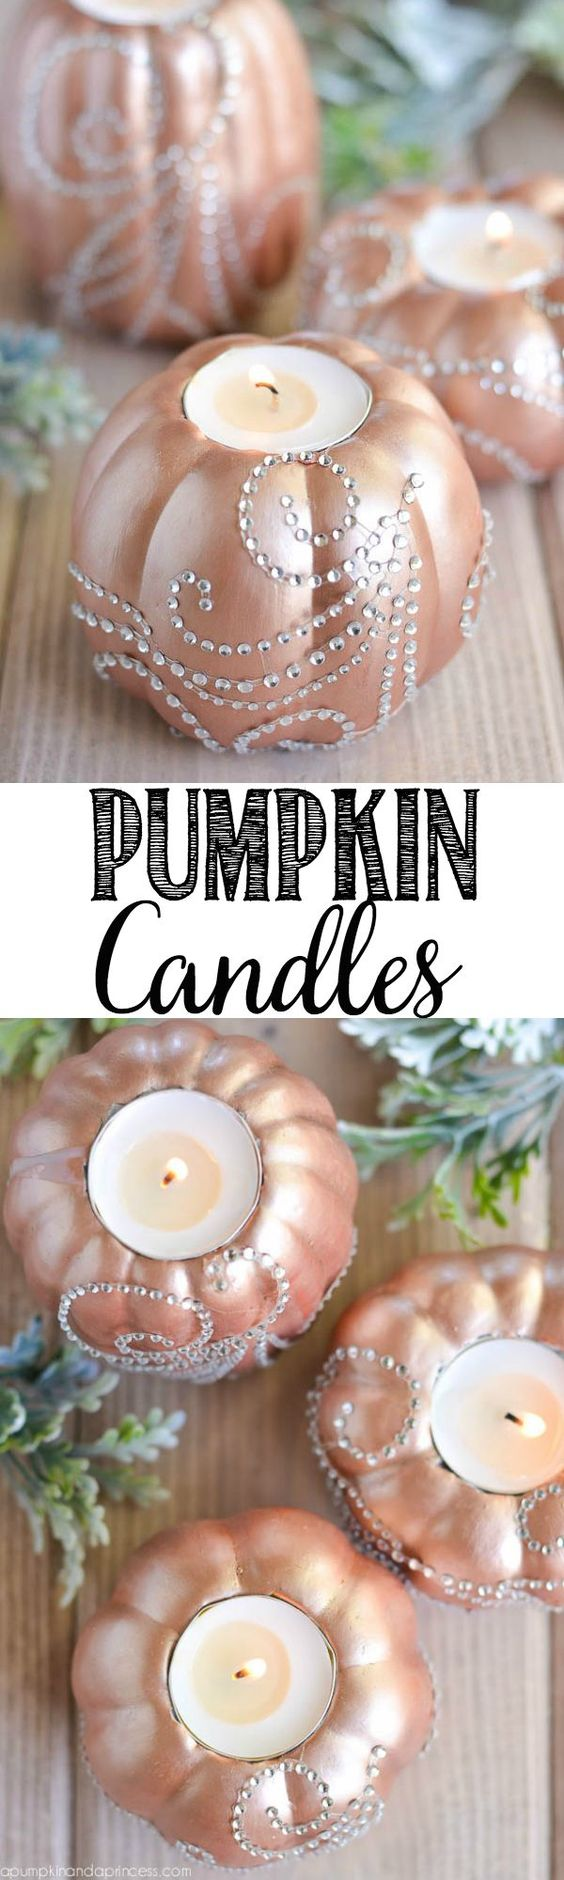 Bedazzled Pumpkin Candles